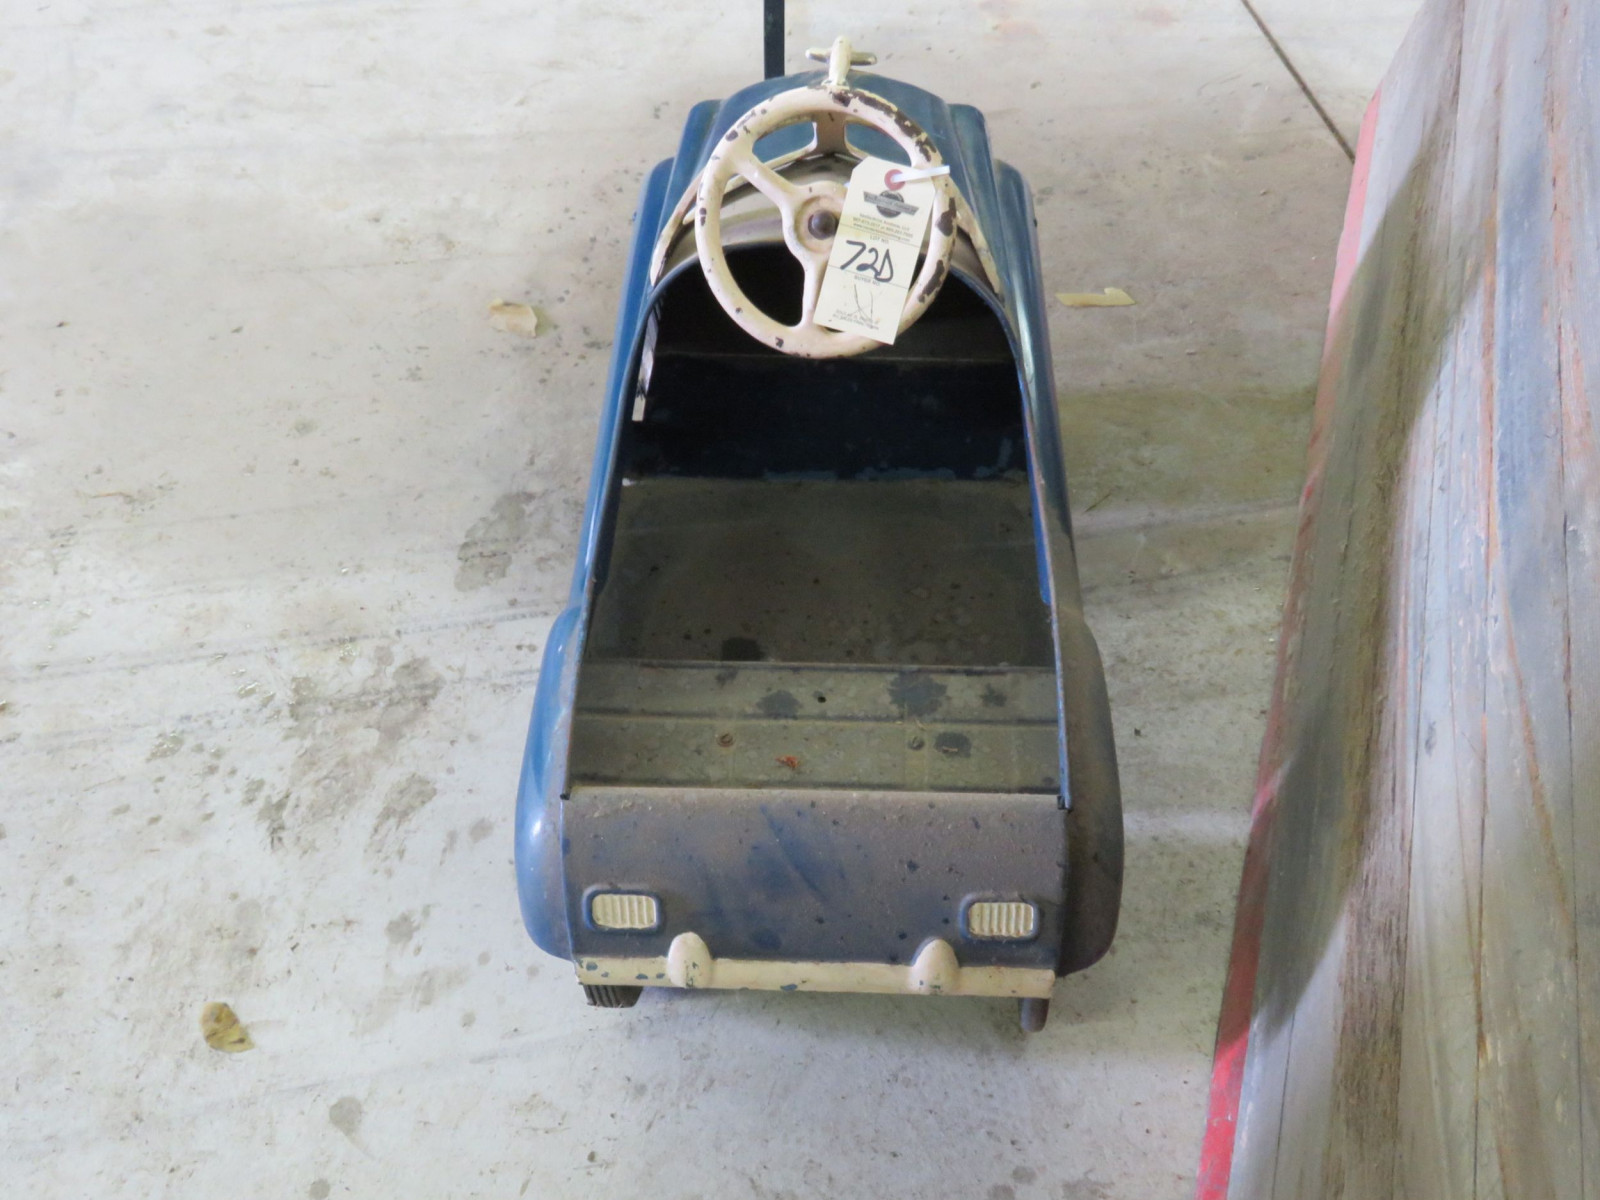 Vintage Murray Pedal Car - Image 4